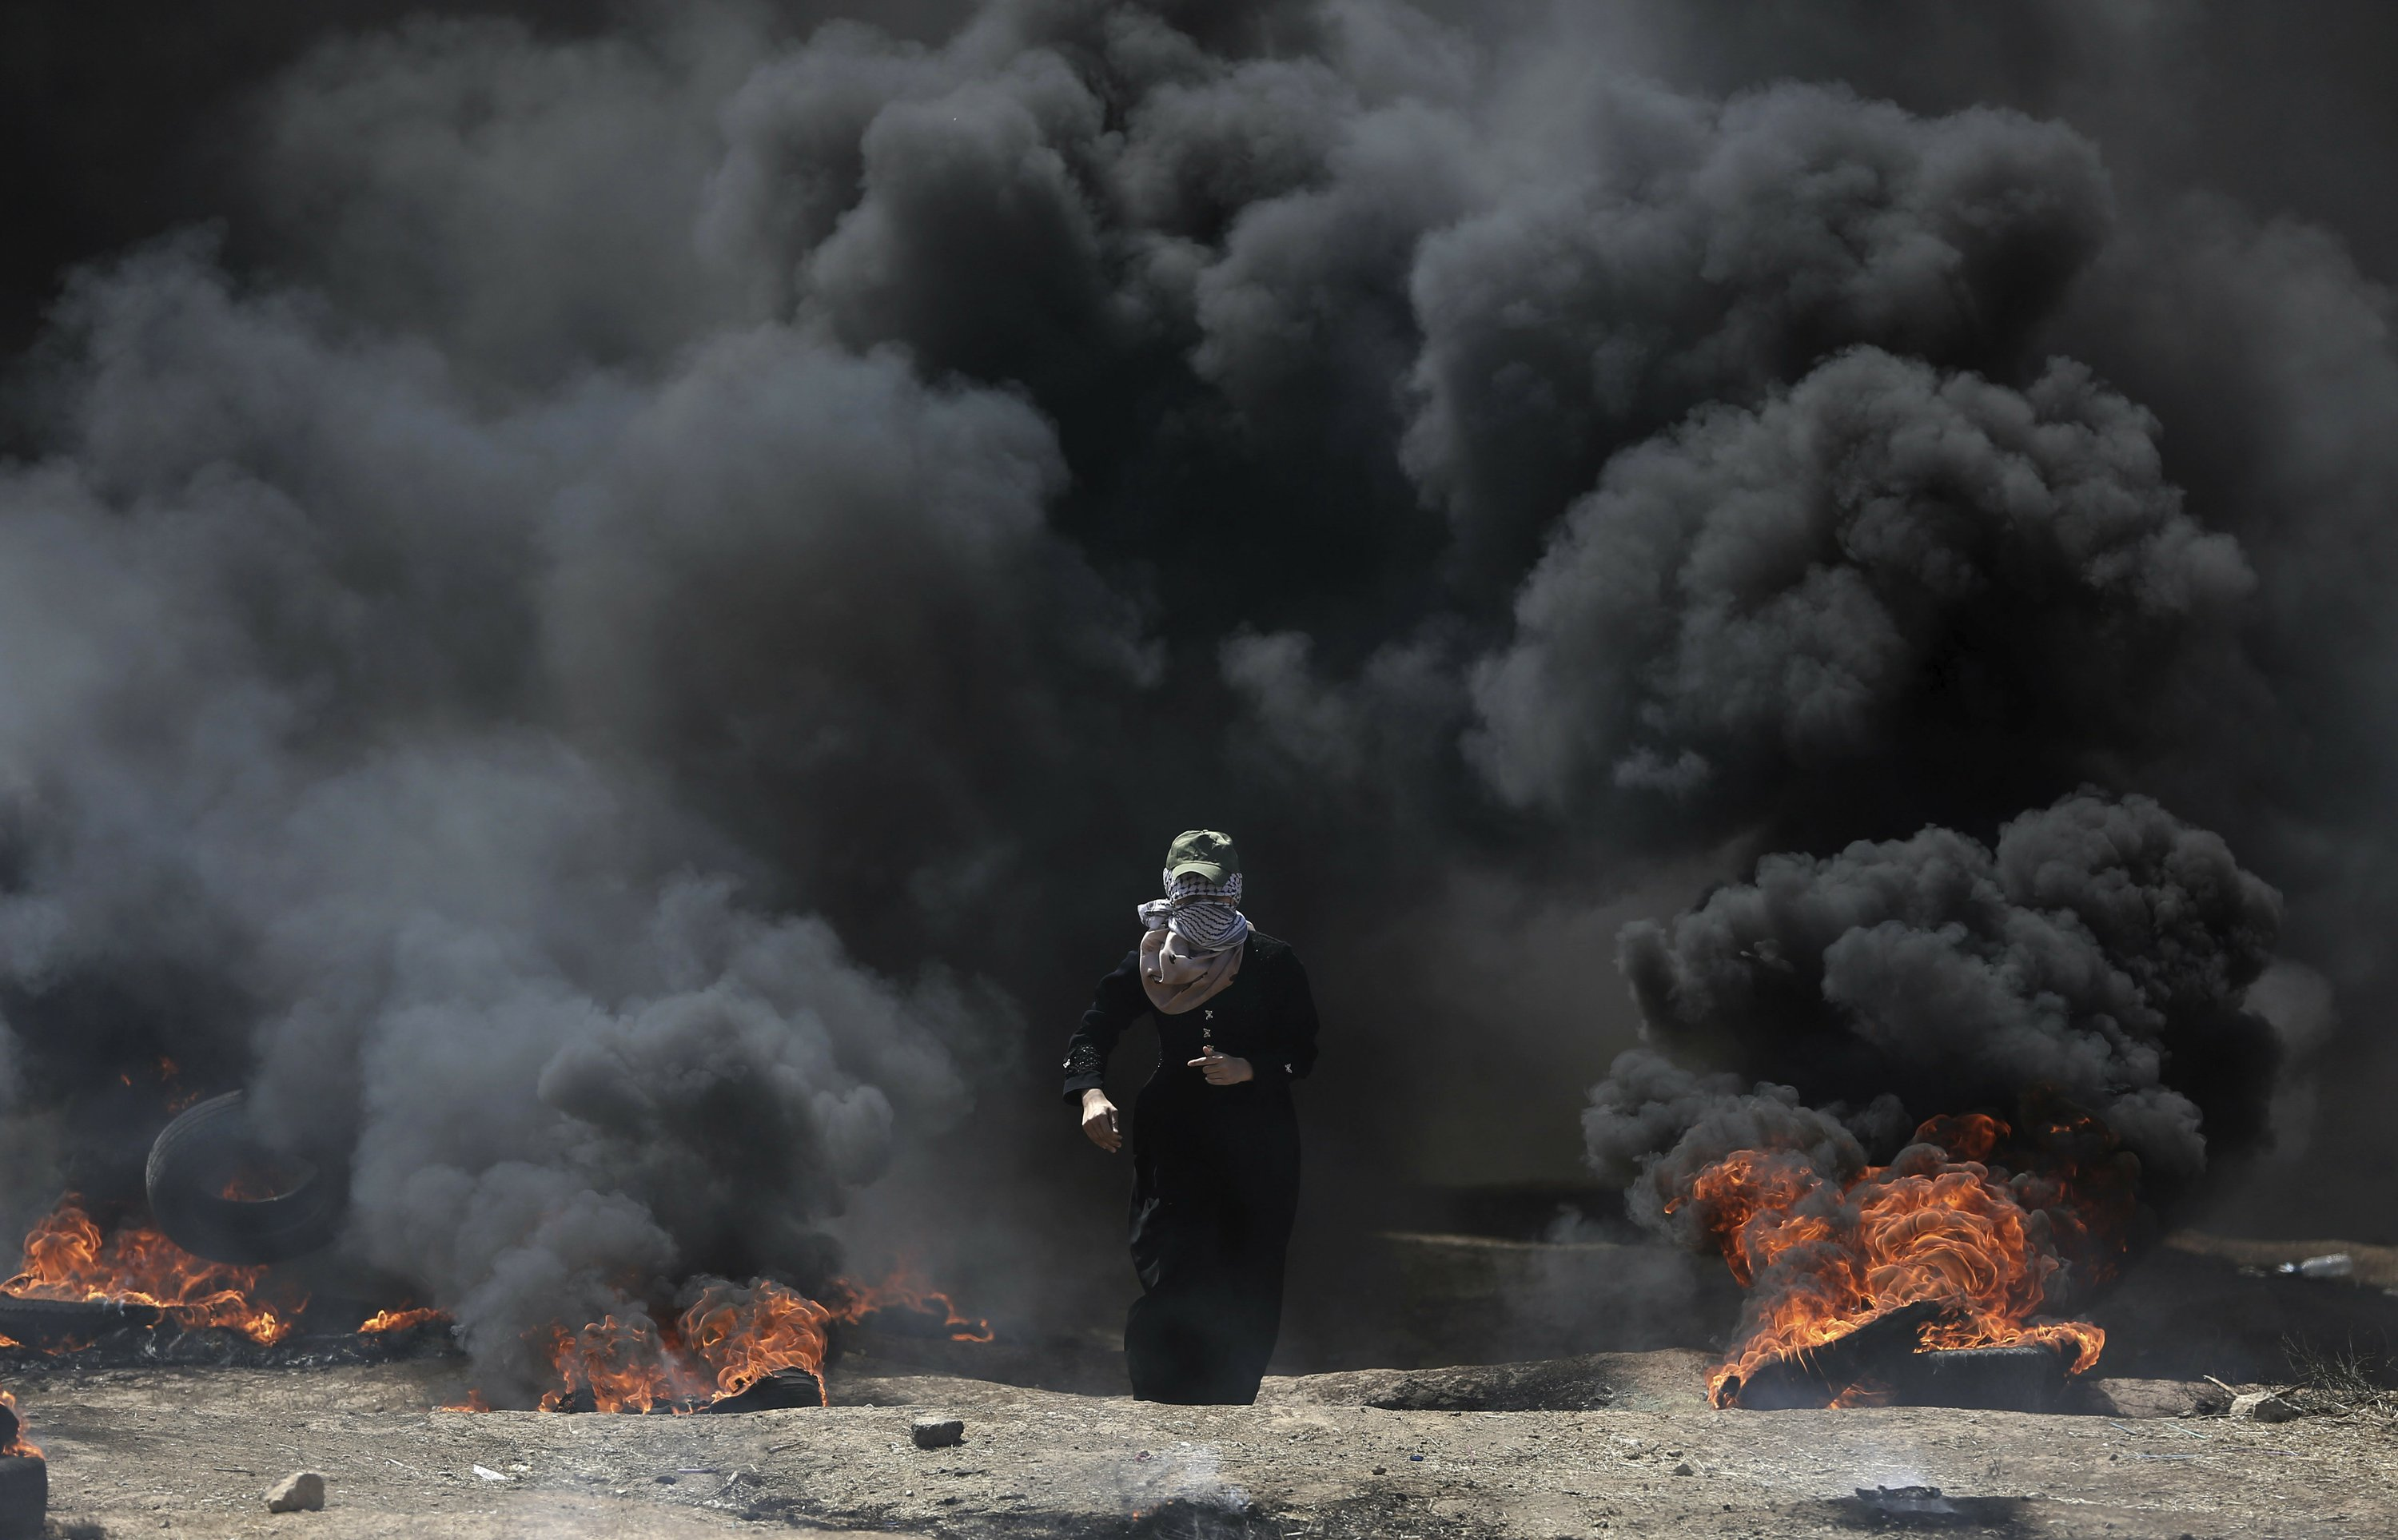 58 dead in Gaza protests as Israel fetes US Embassy move